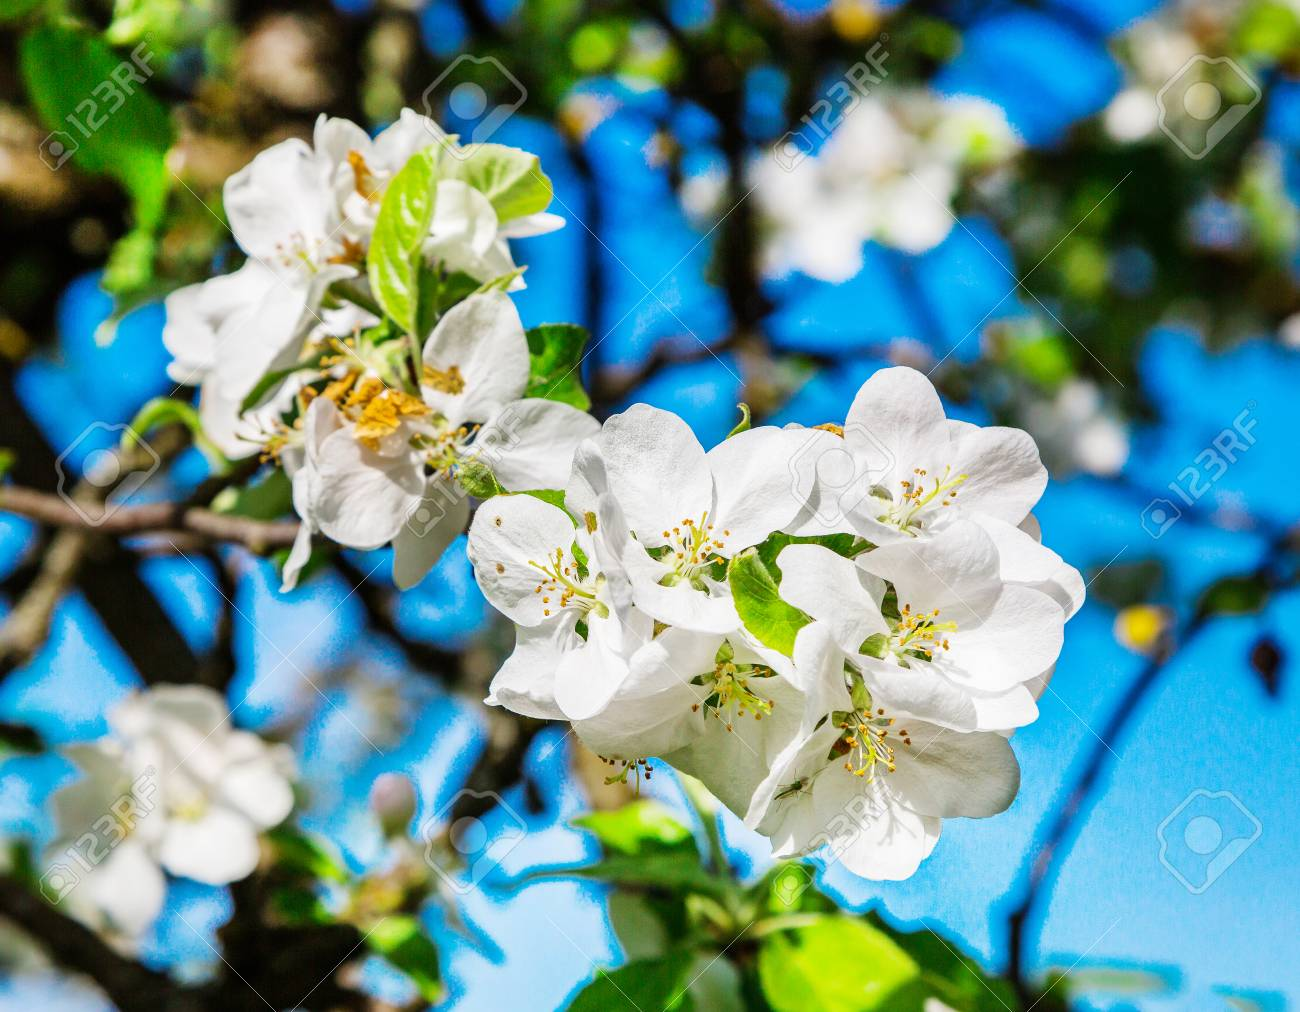 Spring season creative image of the flowers of an apple tree spring season creative image of the flowers of an apple tree close up with mightylinksfo